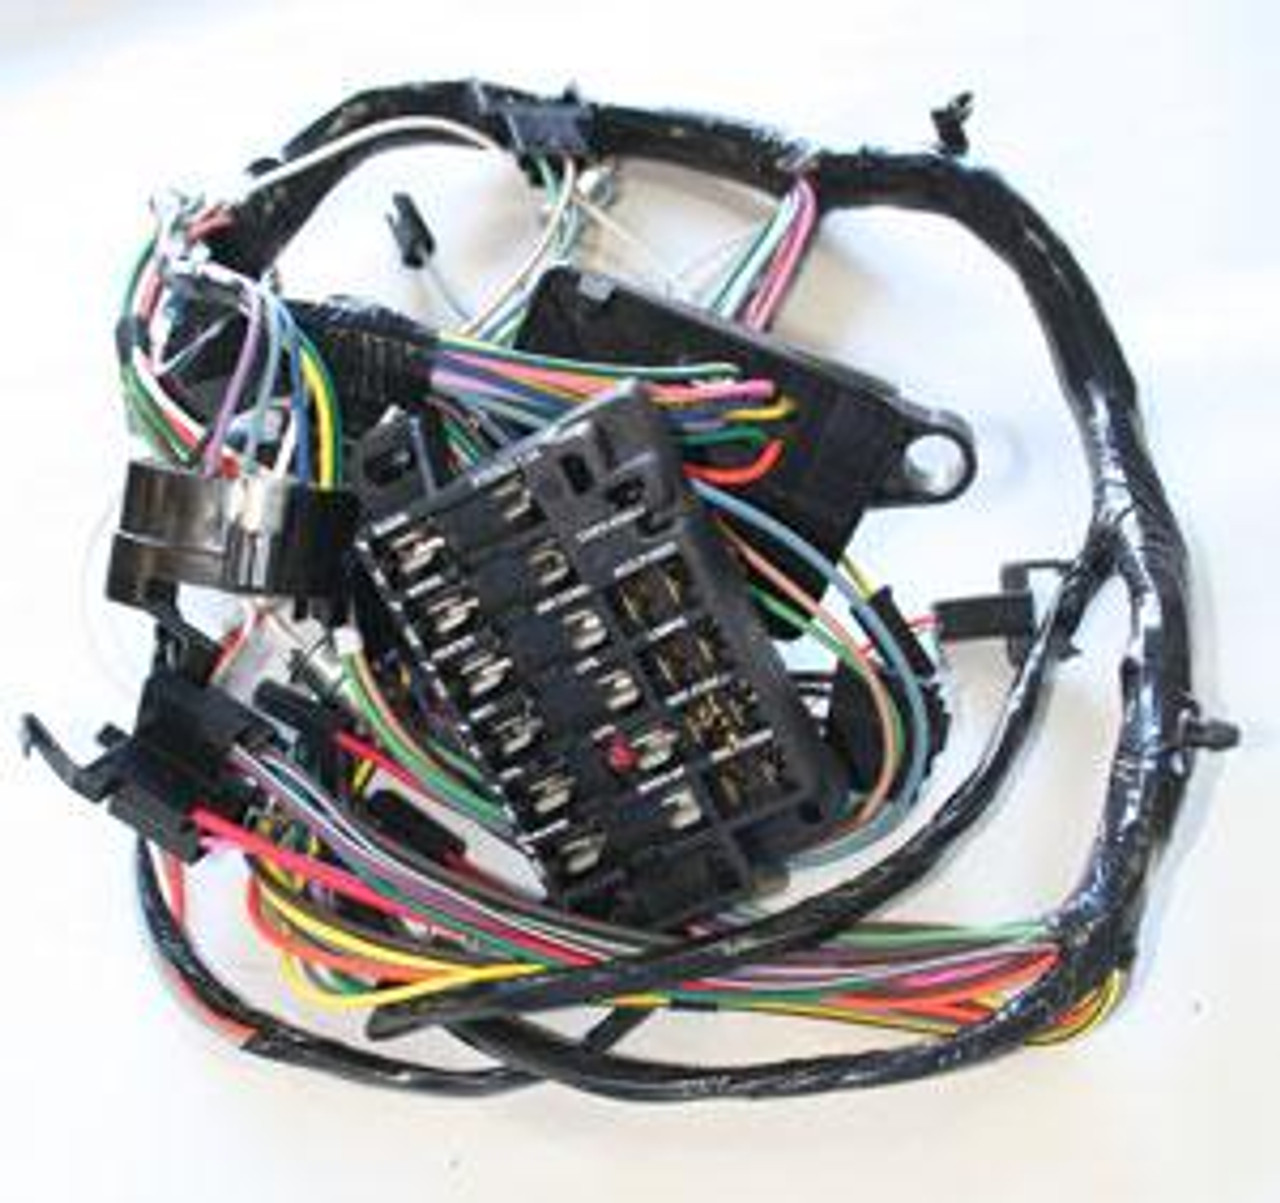 1965 Chevelle, El Camino Dash Harness, with Gauges (CH59049)